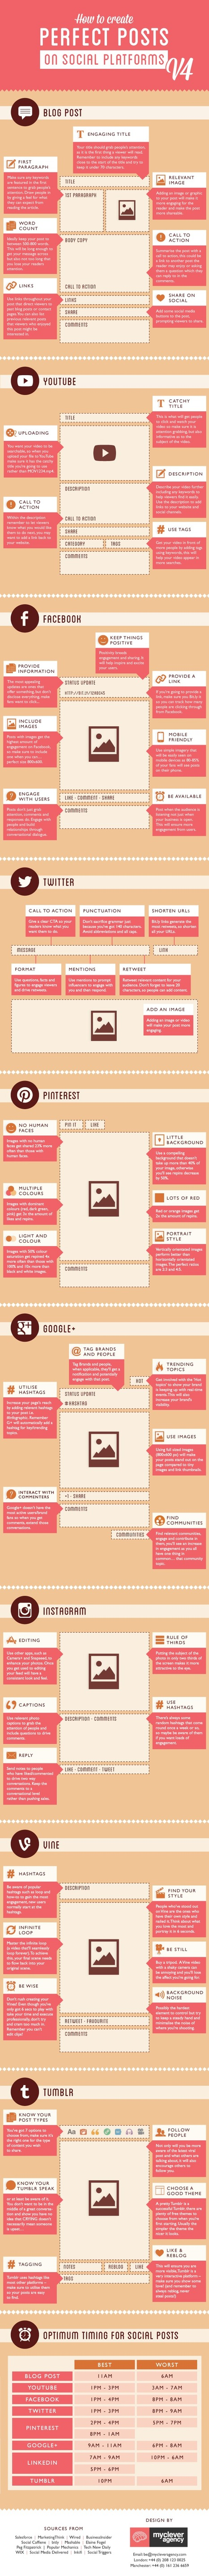 The Art of Creating Perfect Social Media Posts - infographic | SOUND DESIGNER | Scoop.it